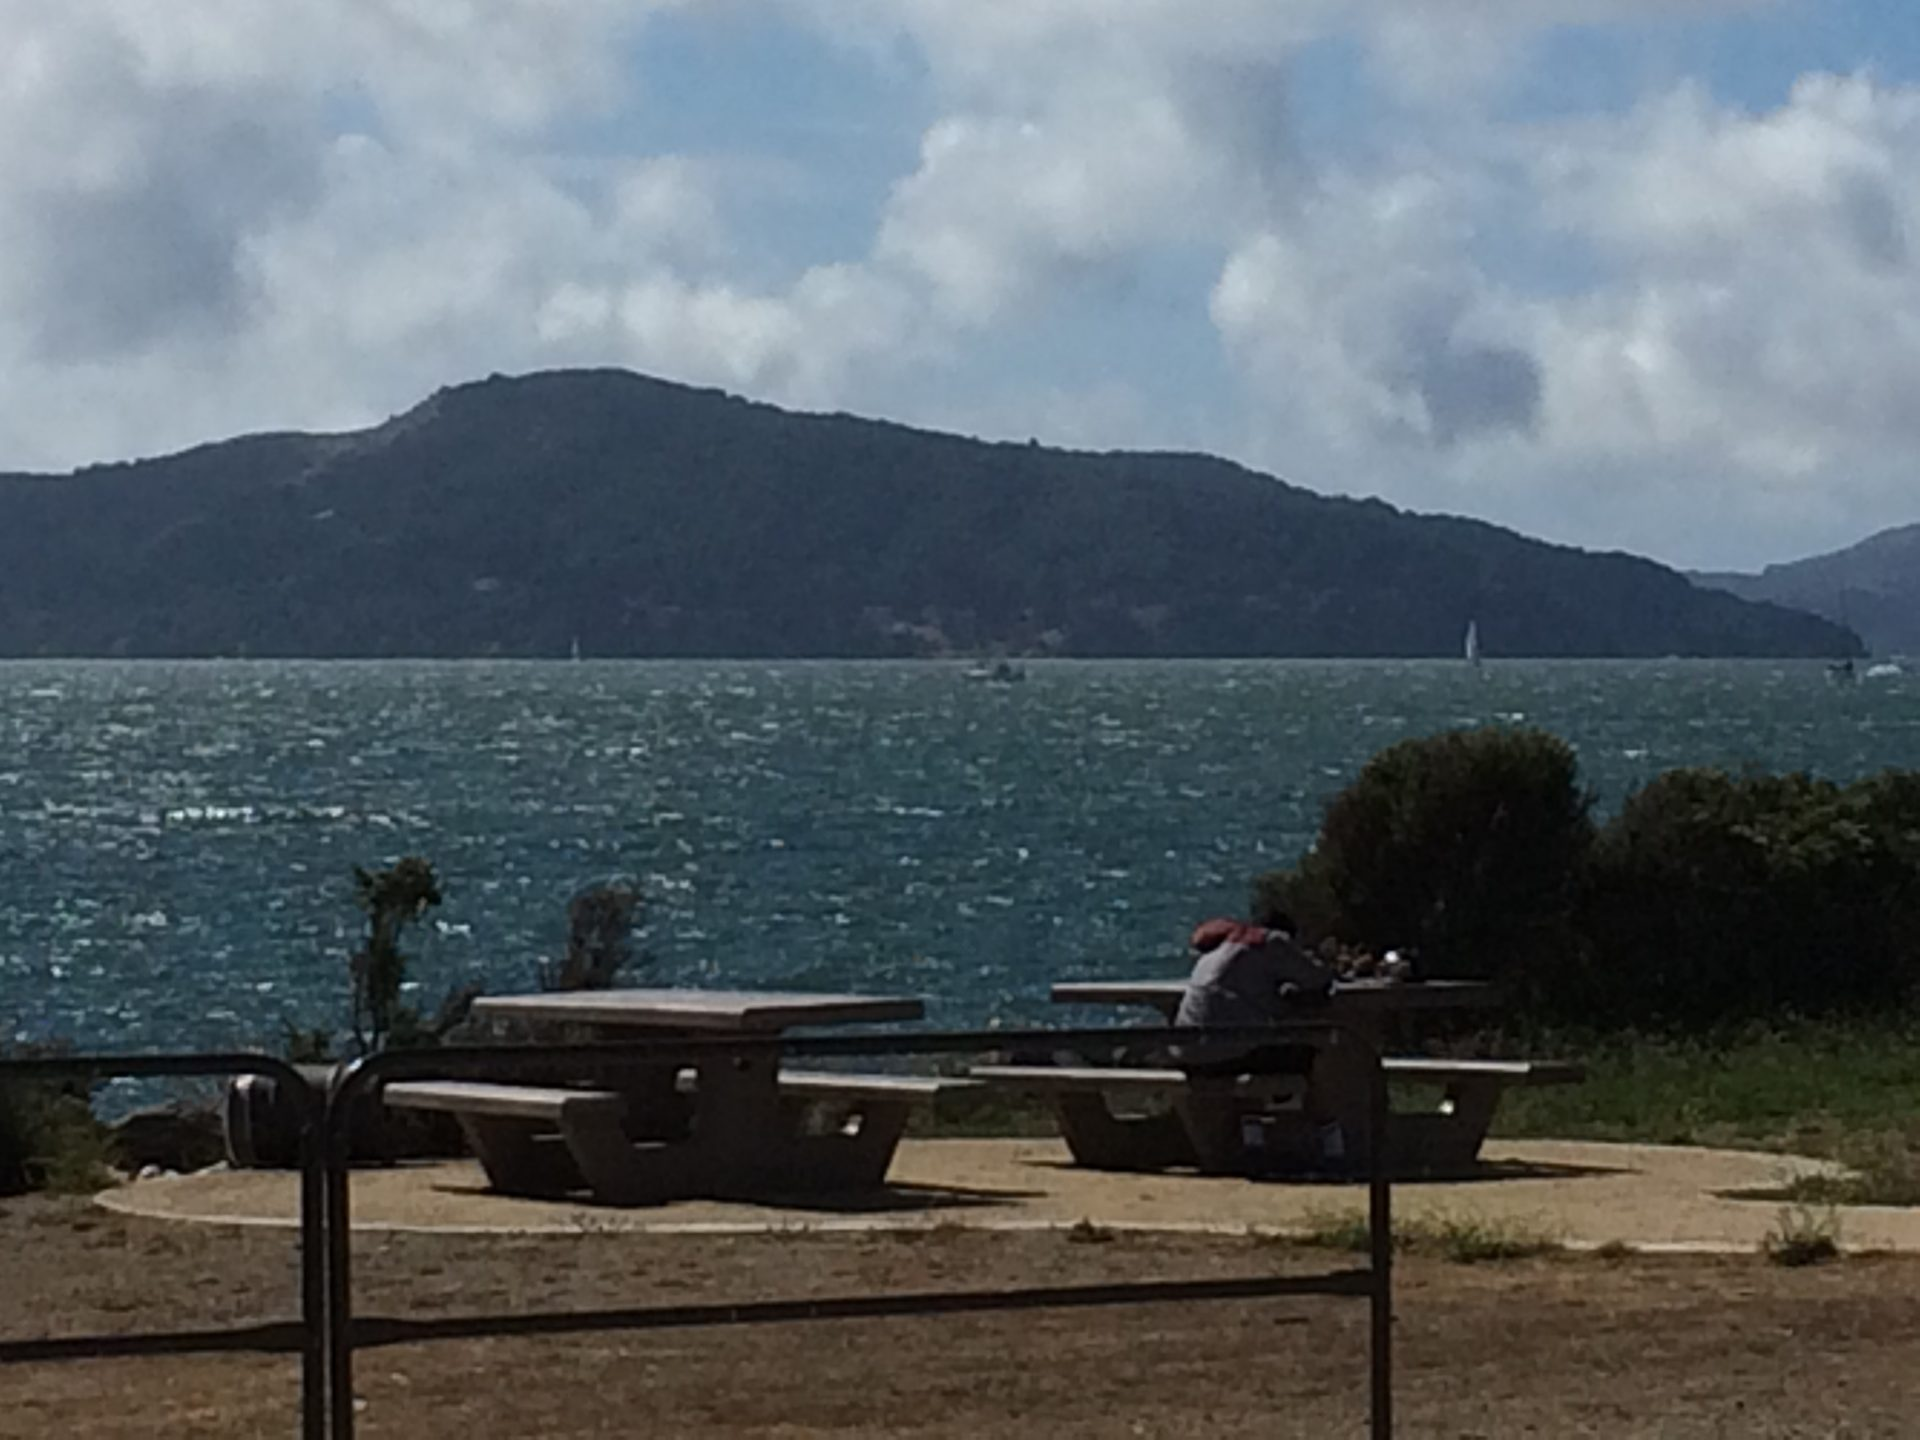 person with head down on concrete picnic table, next to another empty table, Mount Tamalpais in distance